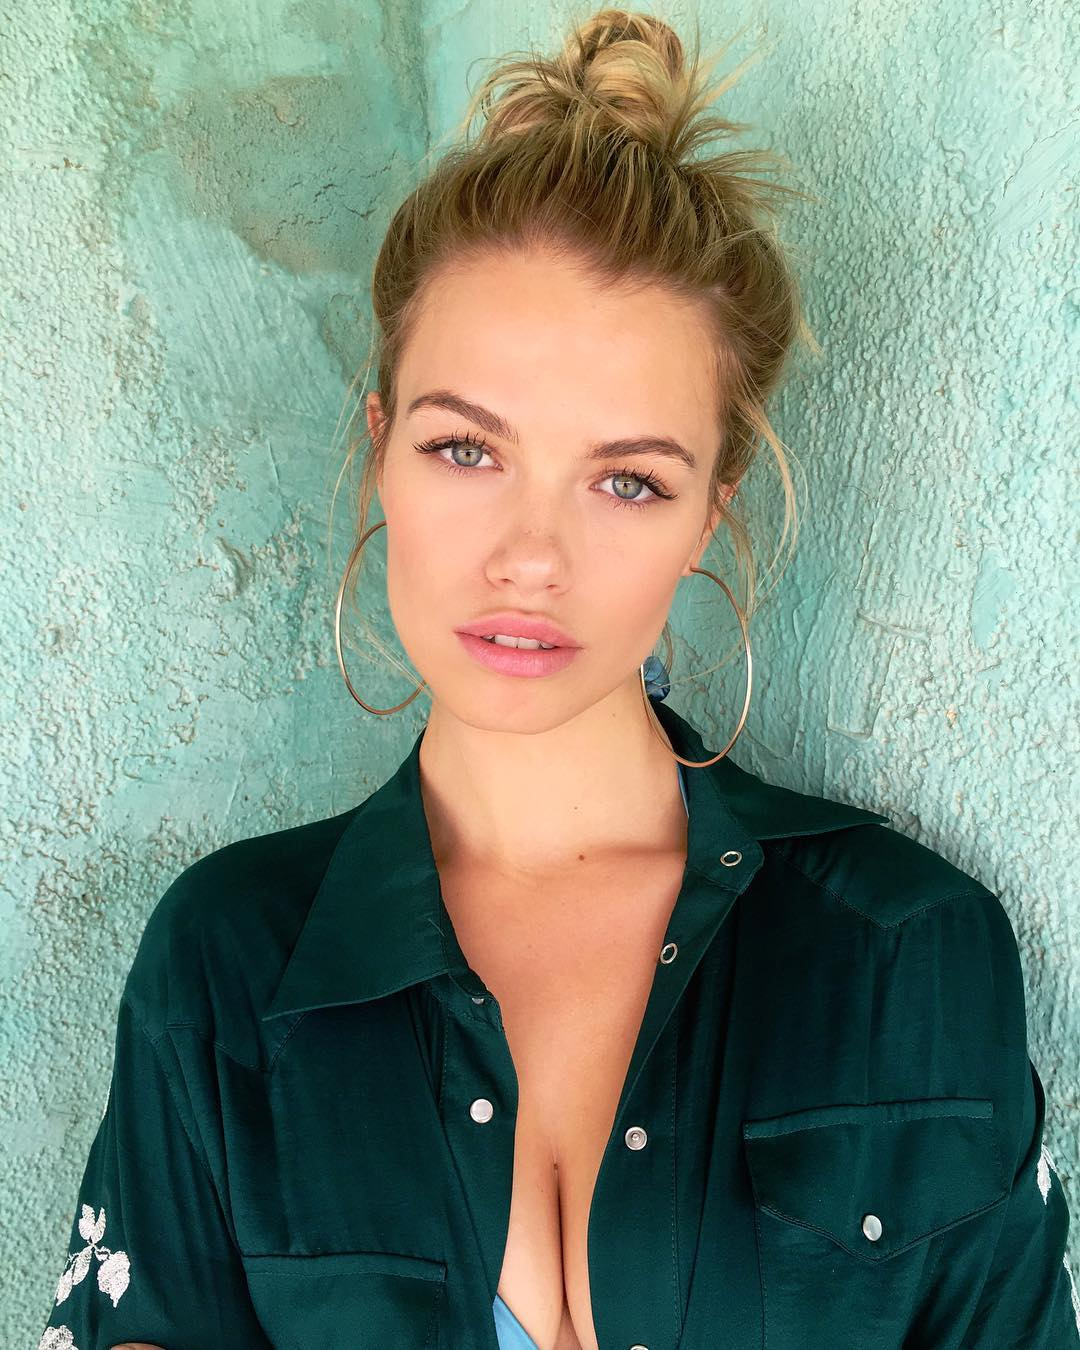 Hailey Clauson hoop earrings celebs